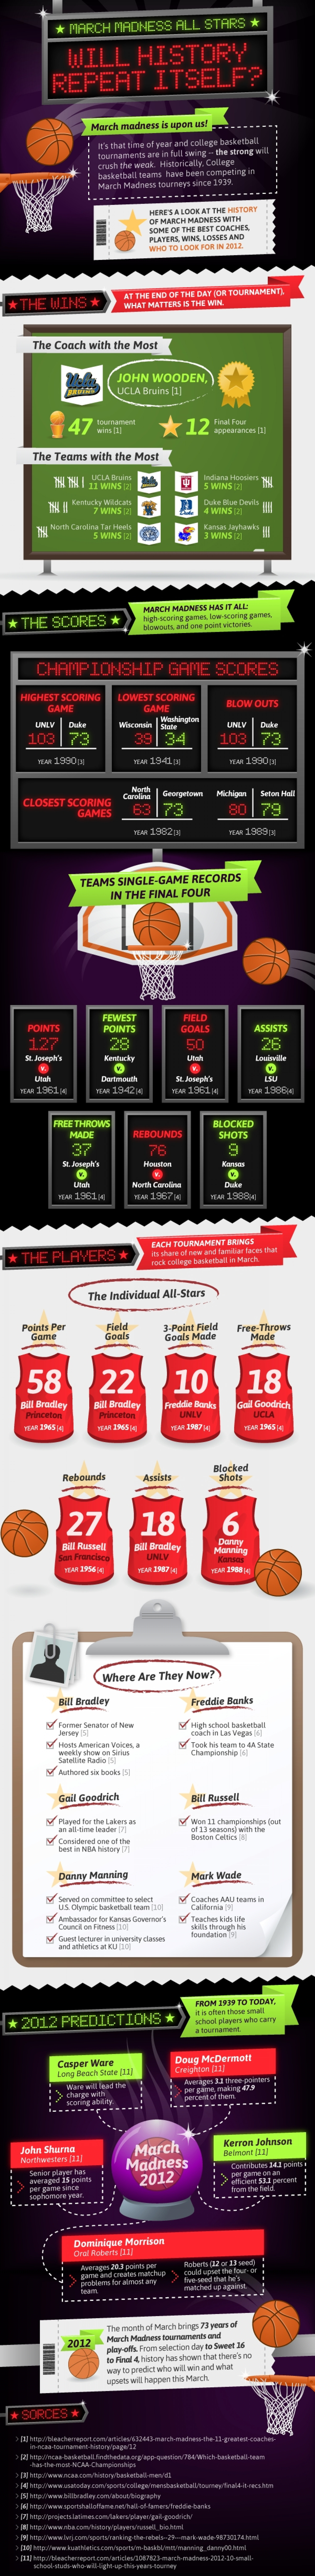 March Madness All Stars: Will History Repeat Itself? Infographic